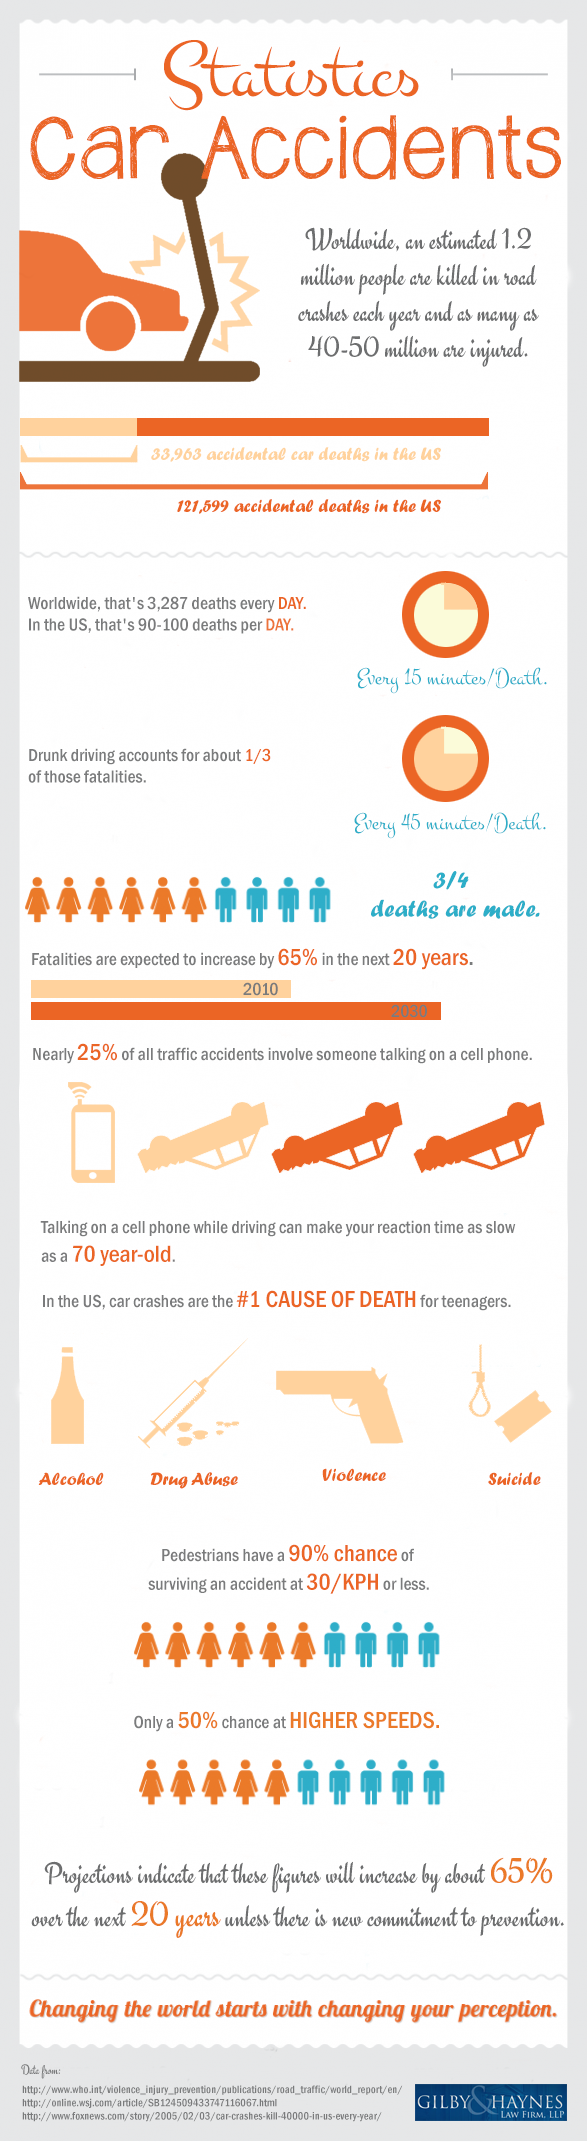 Car Accidents Statistics Infographic